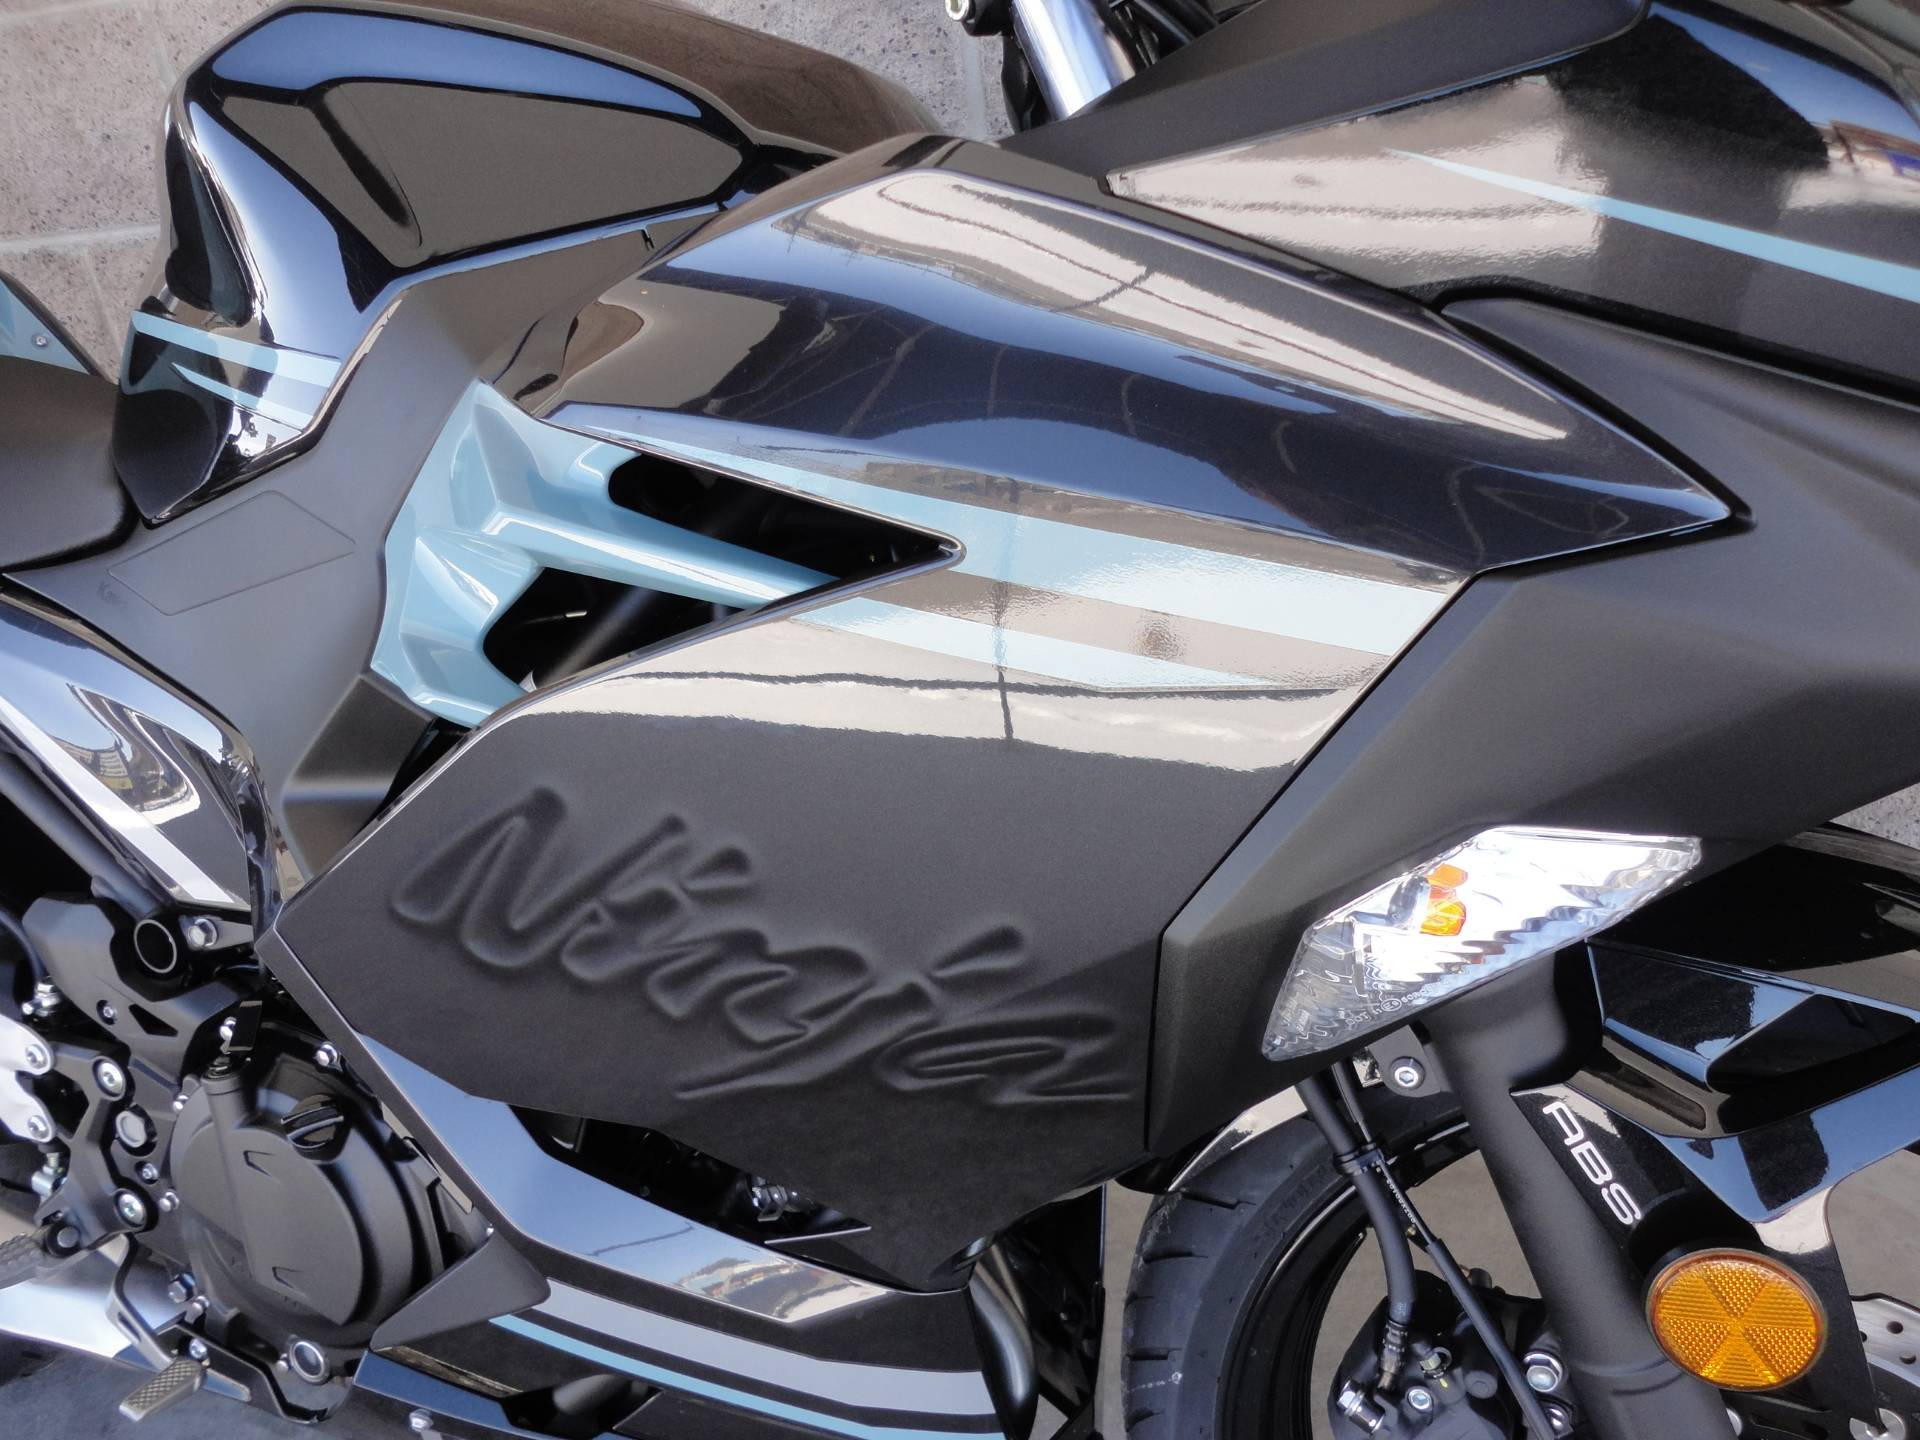 2020 Kawasaki Ninja 400 ABS in Denver, Colorado - Photo 17